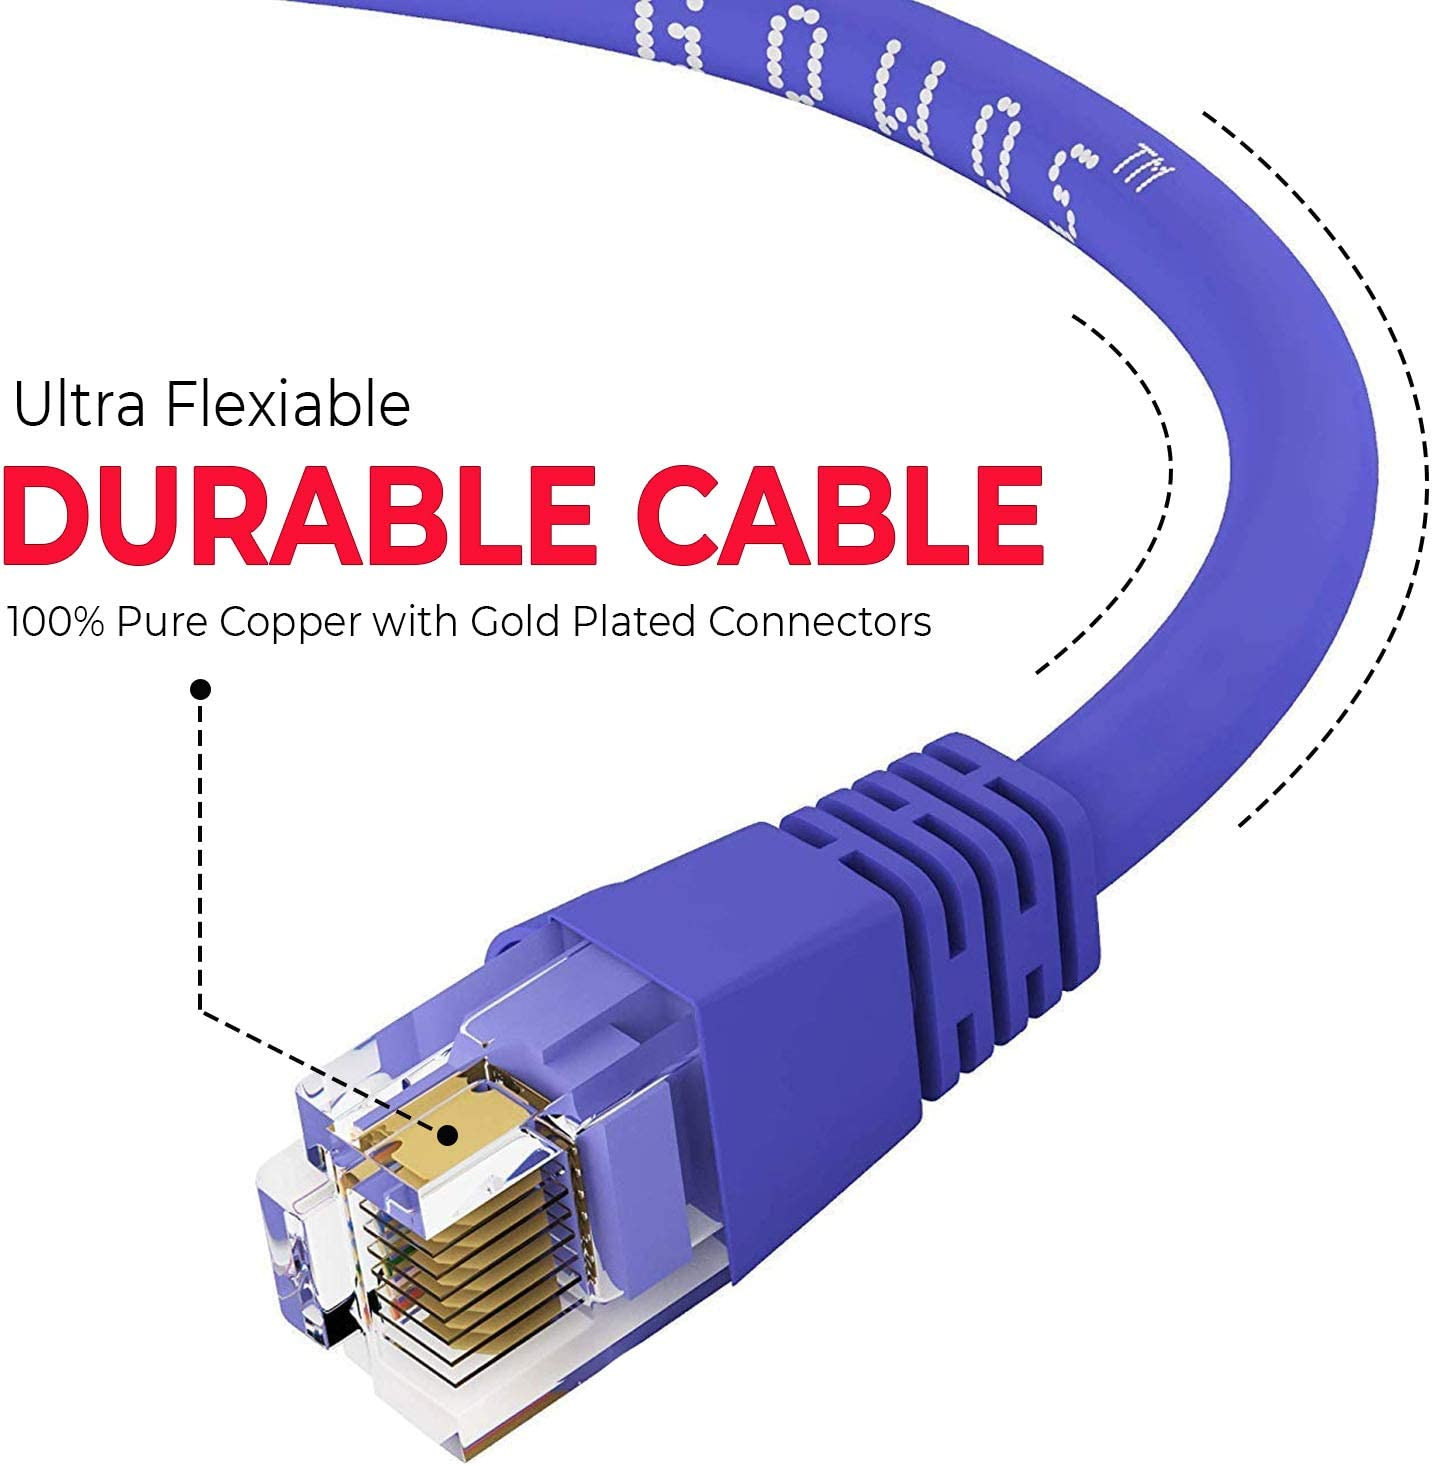 0.5 Feet - Purple 1Gigabit//Sec High Speed LAN Internet//Patch Cable 350MHz GOWOS Cat5e Ethernet Cable 24AWG Network Cable with Gold Plated RJ45 Snagless//Molded//Booted Connector